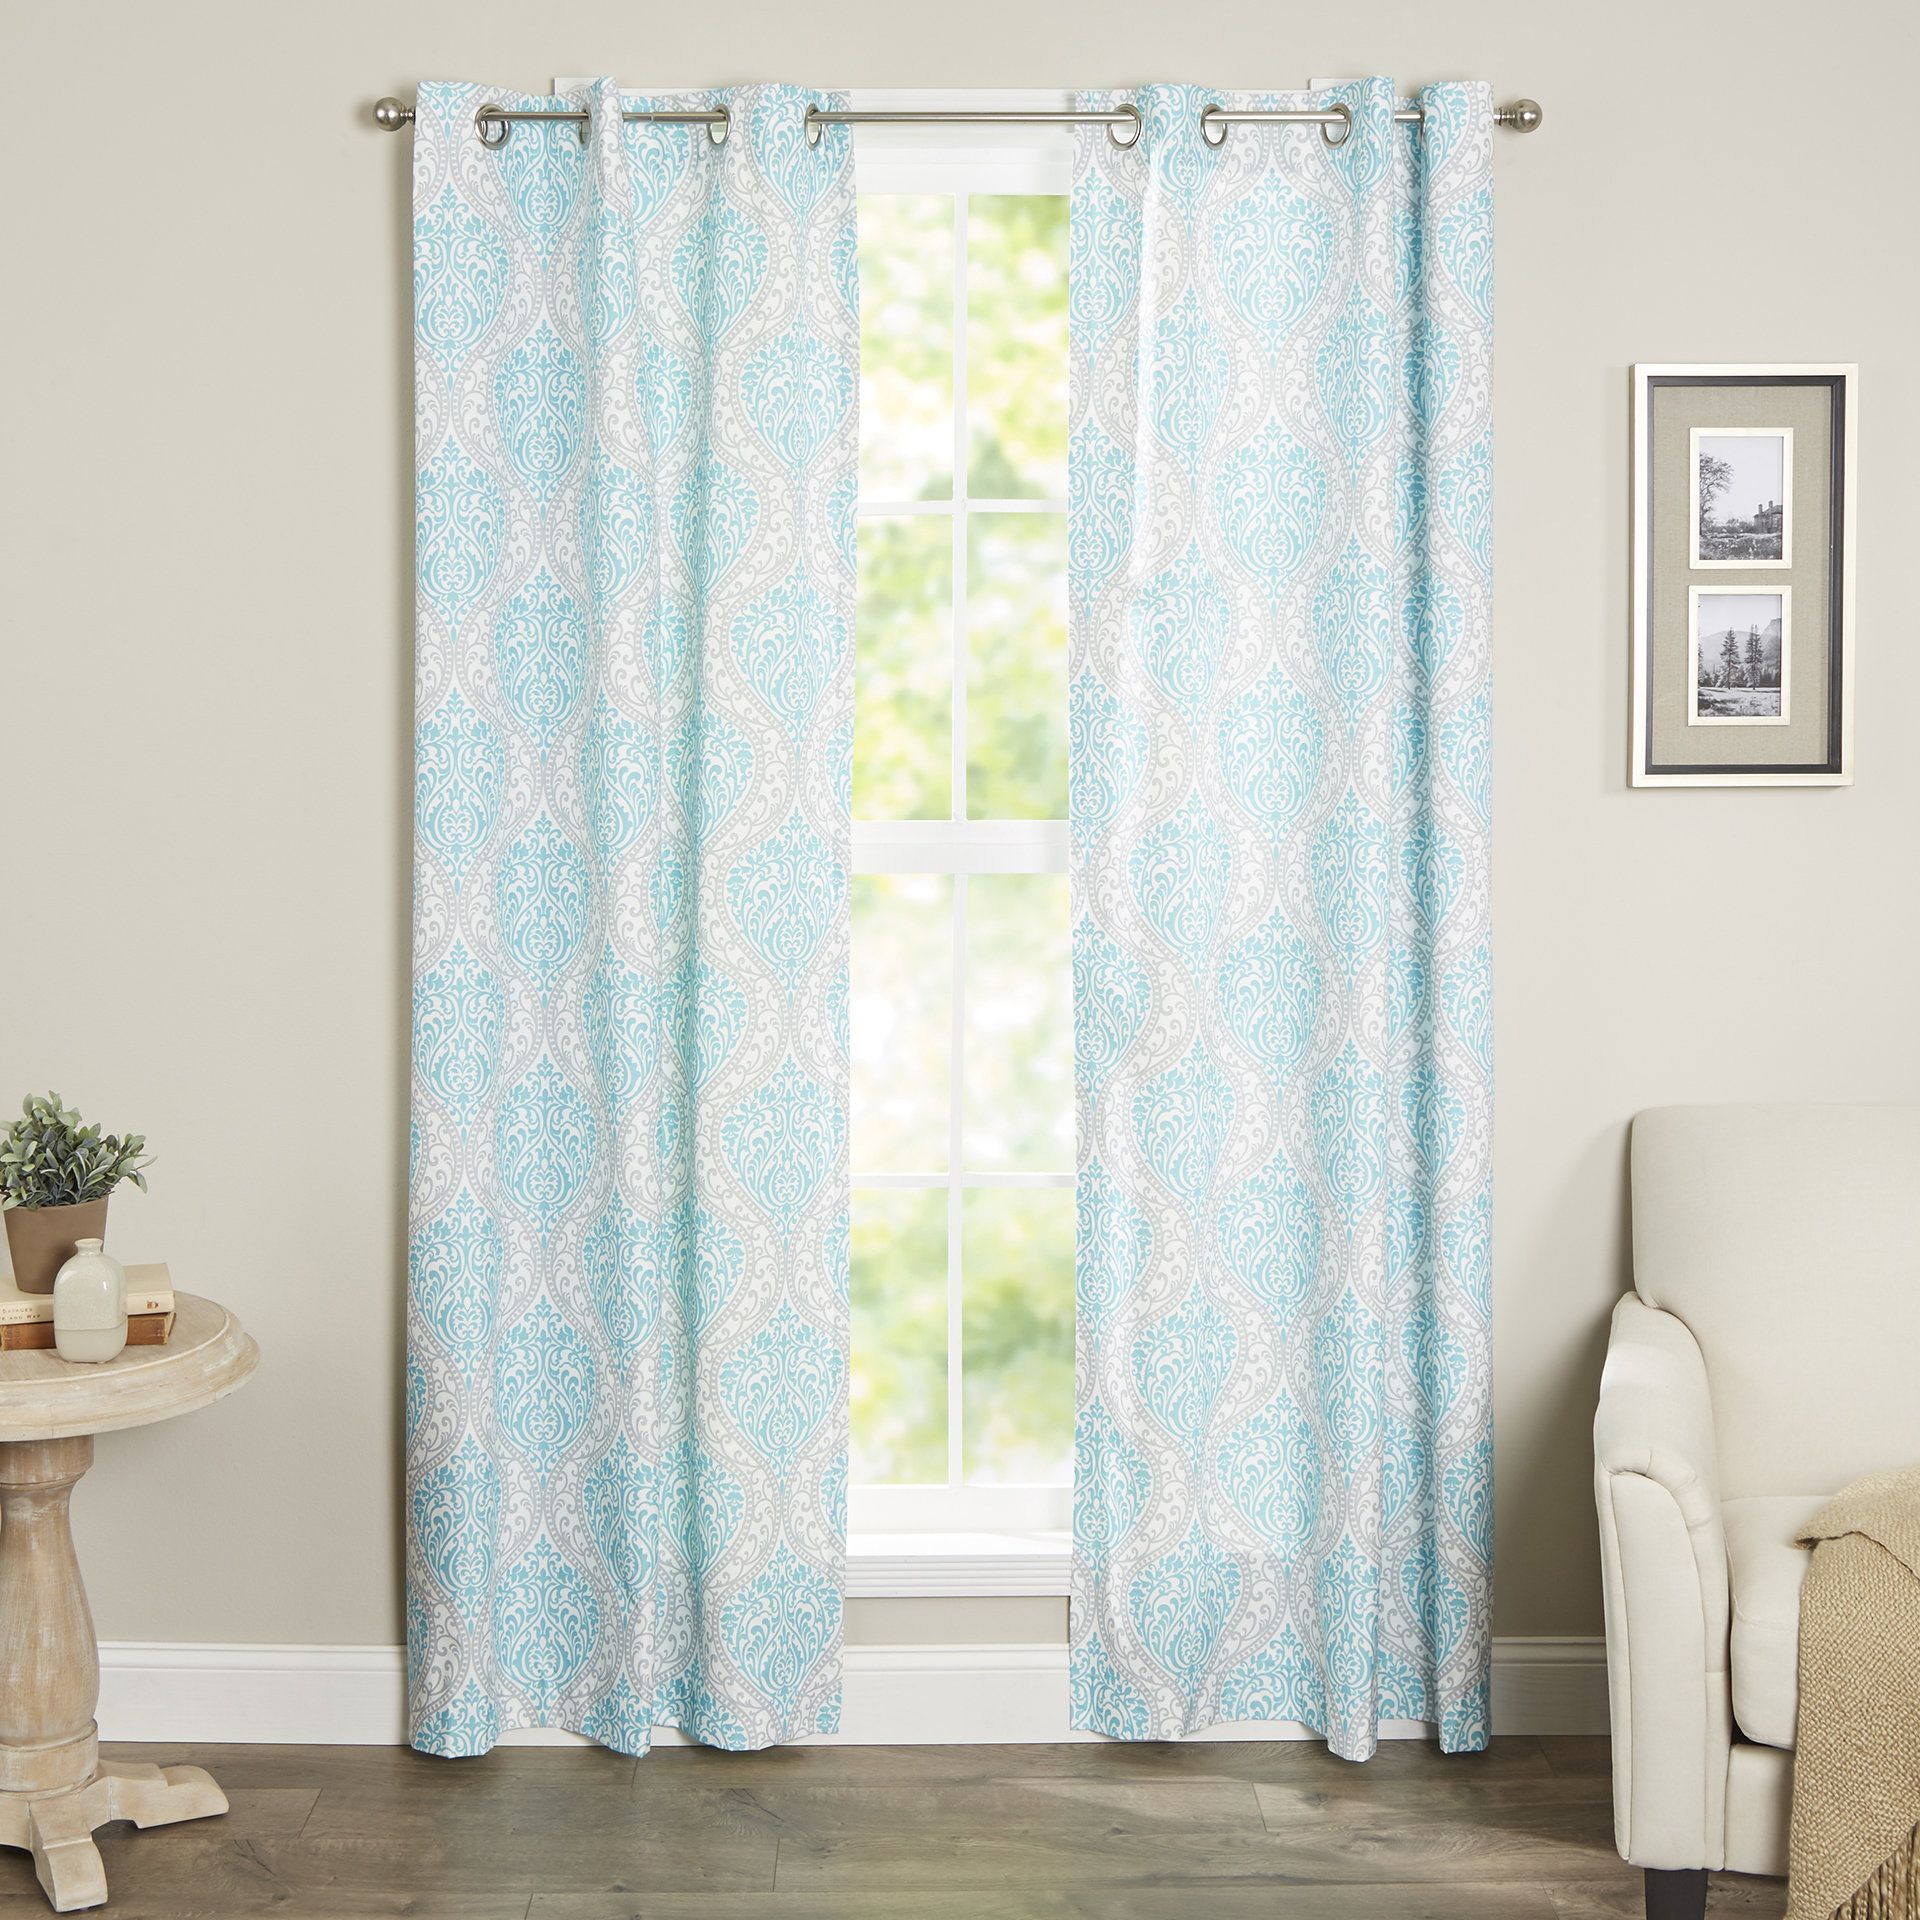 Curtains Grommet